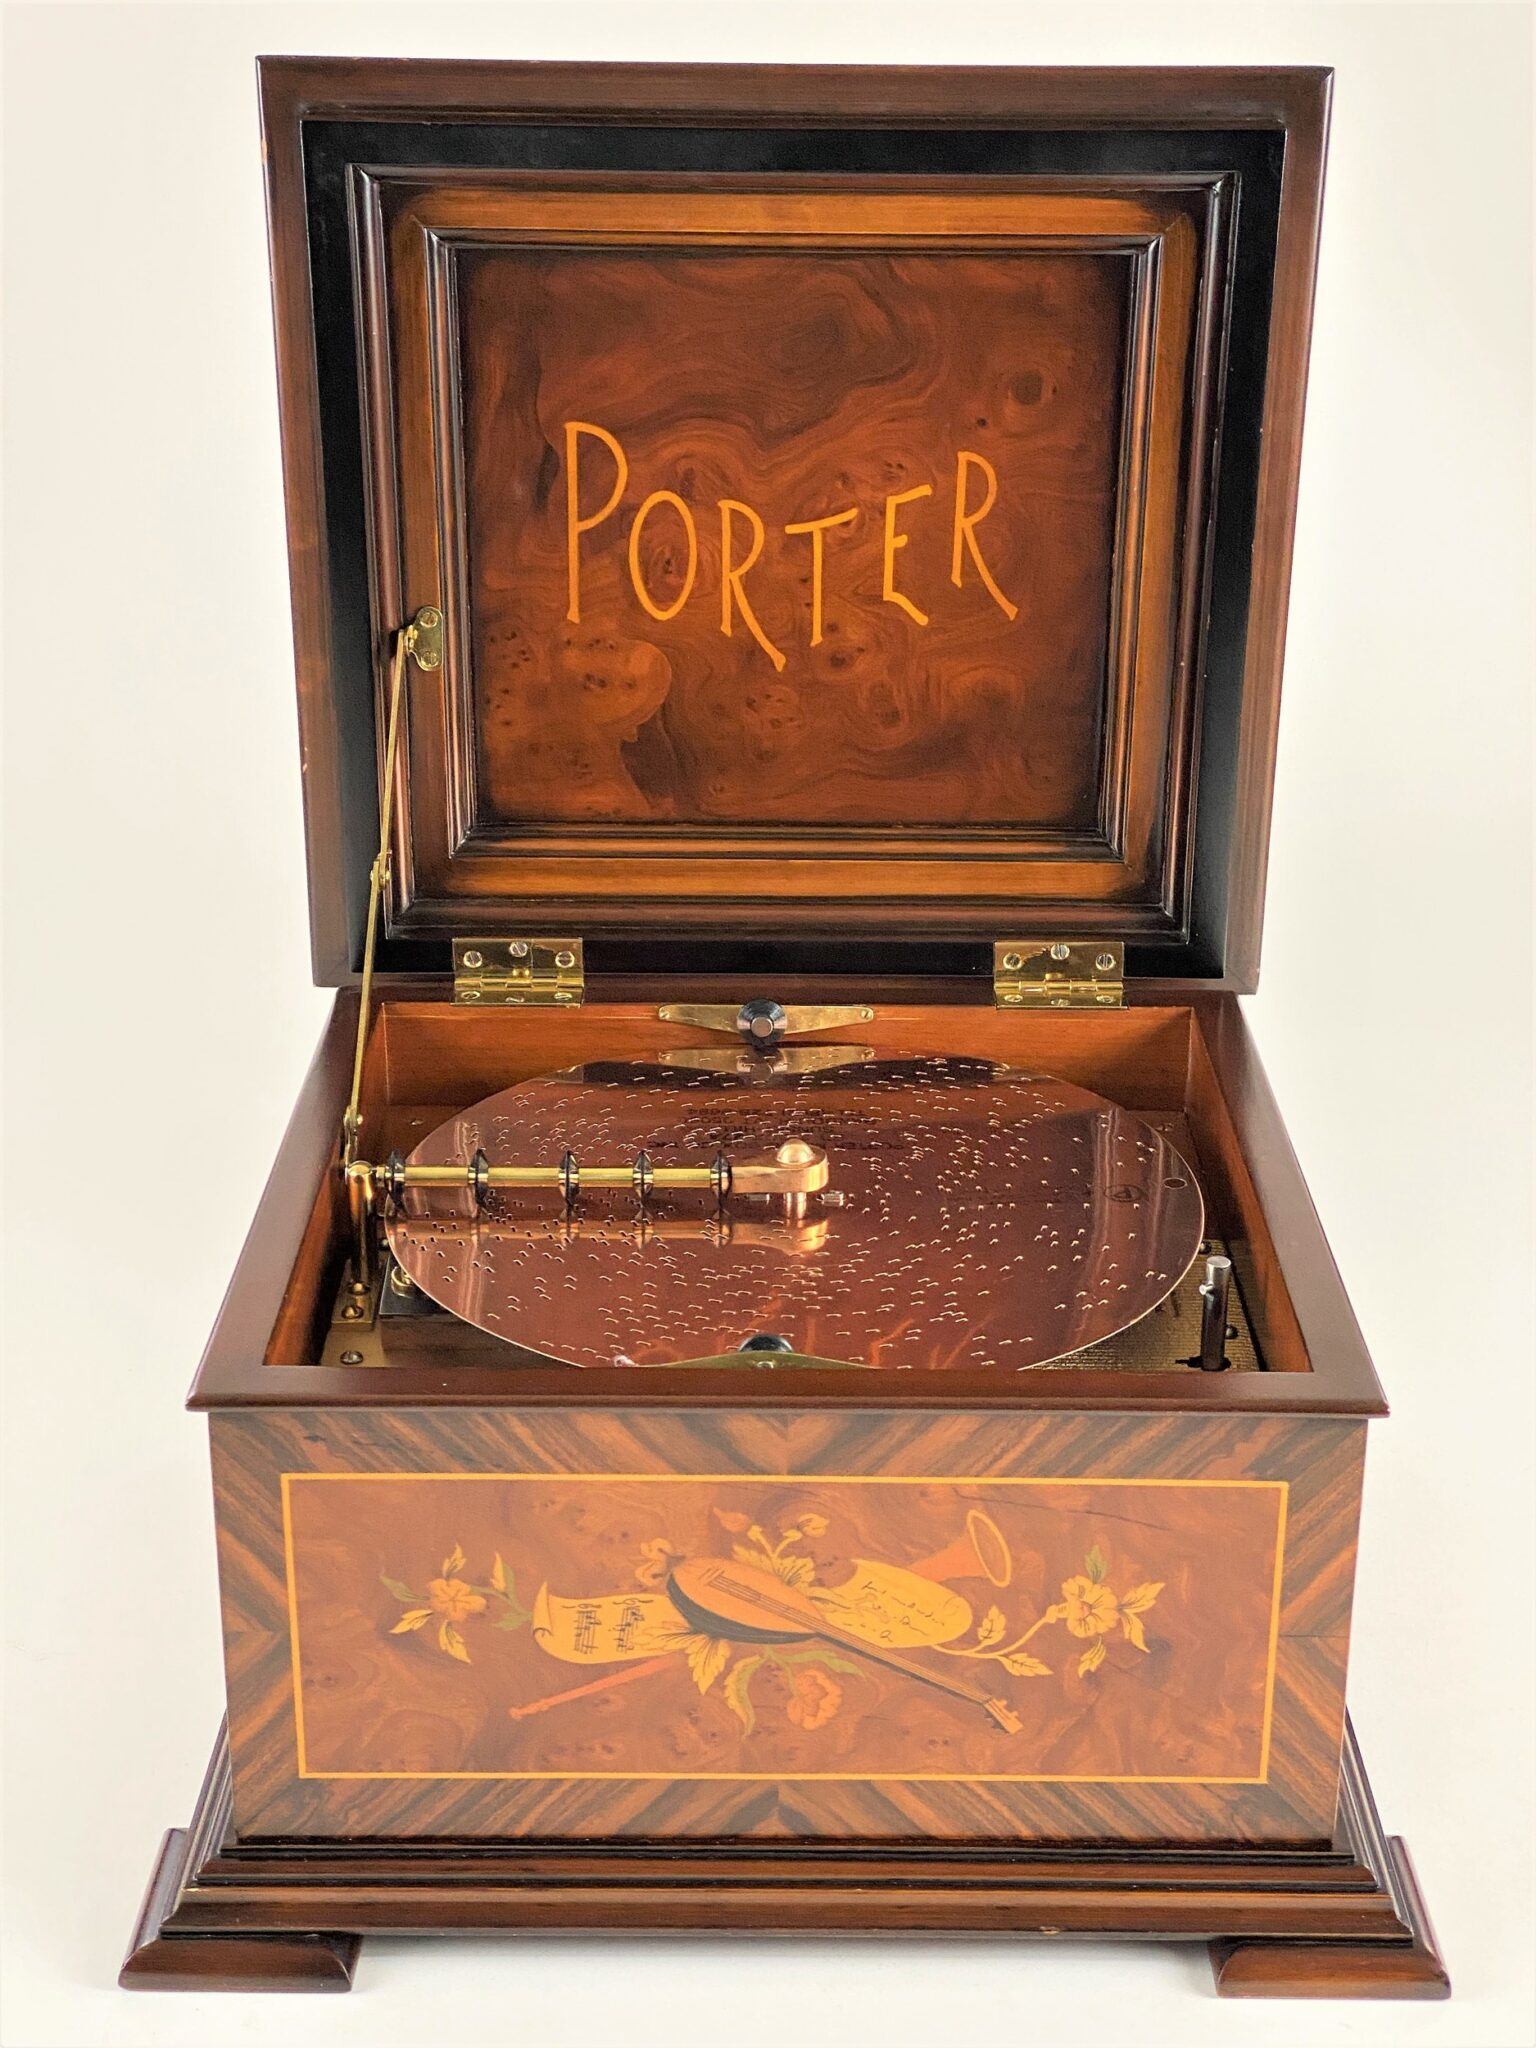 Rare Porter Musix Box in Highly Detailed Inlaid Case, Including Six Disks | Sold for $3,250